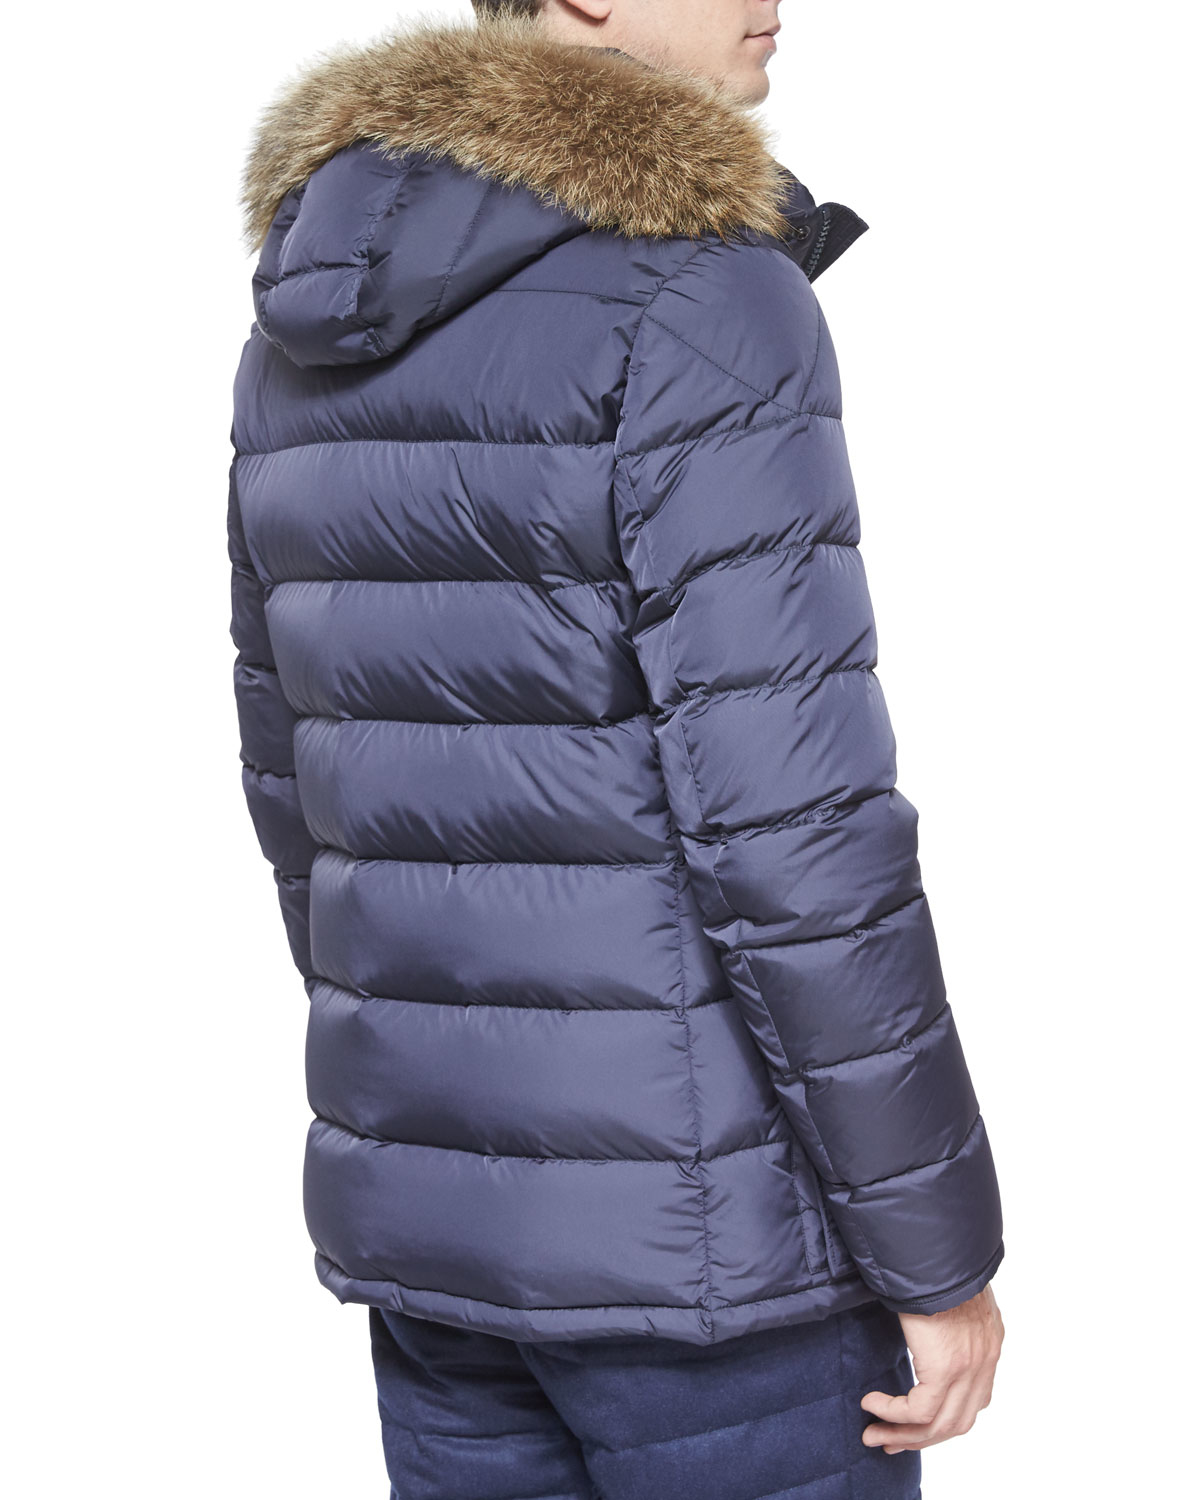 46fb9ba83 Moncler Blue Cluny Nylon Puffer Jacket With Fur Hood for men